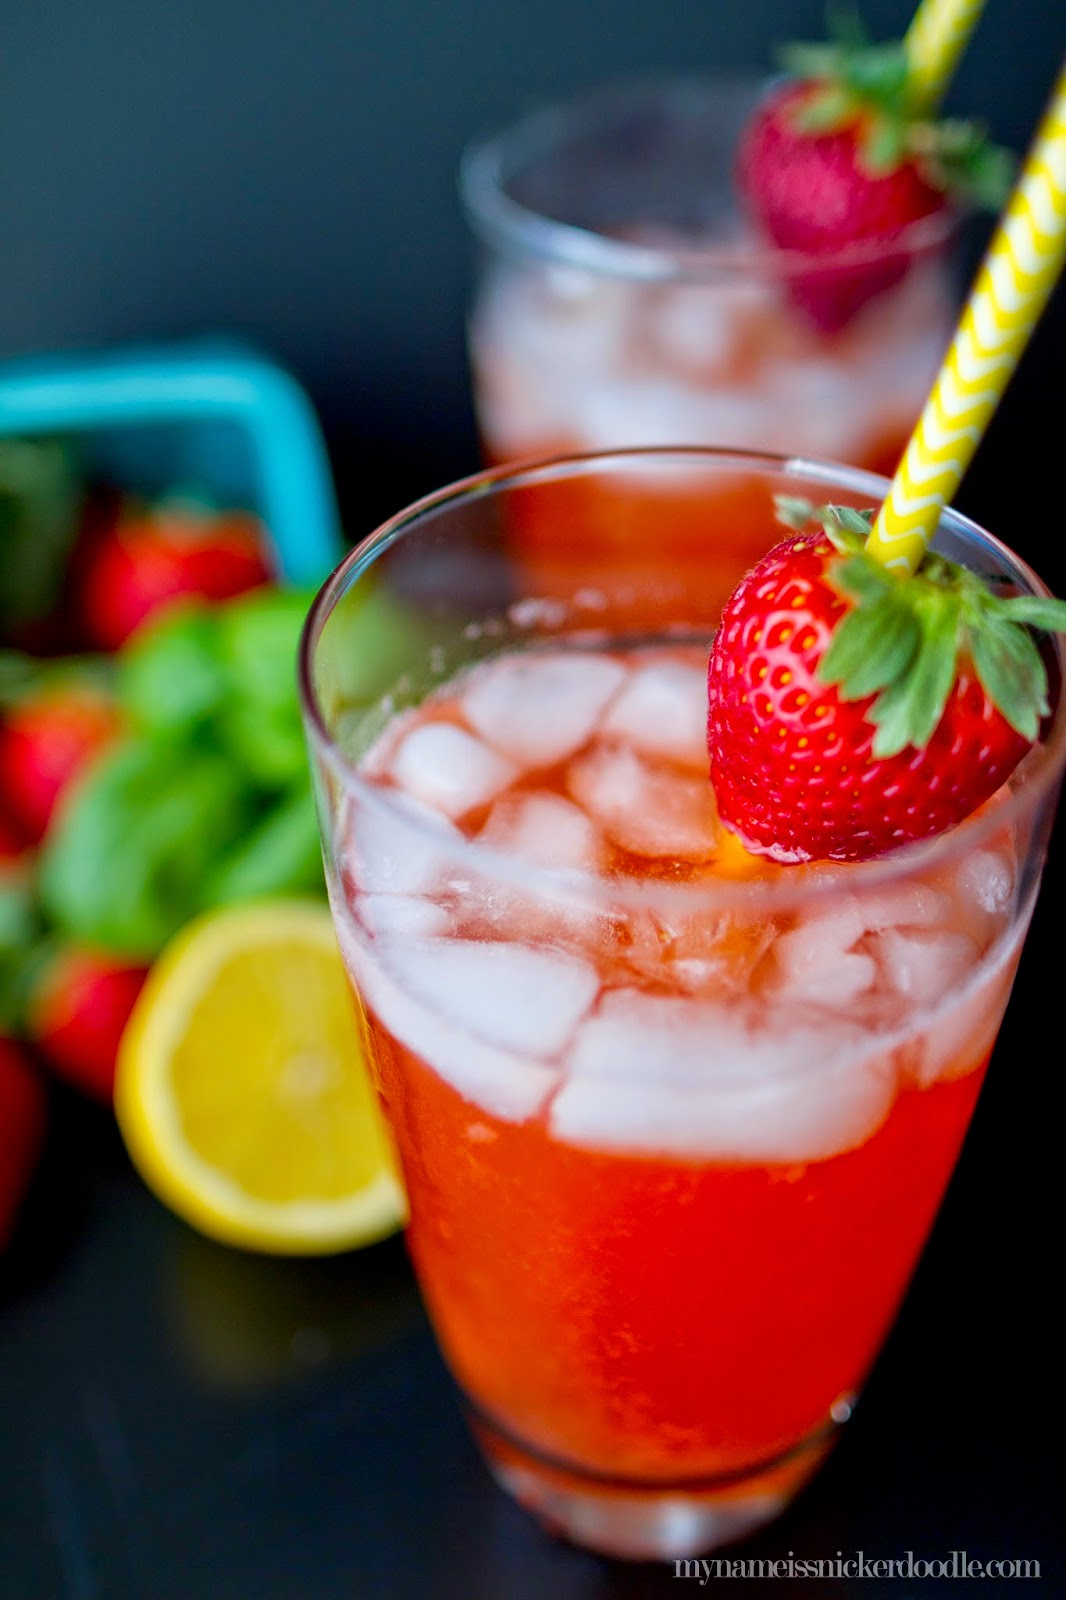 This is the perfect sweet drink for spring and summer.  Strawberry Basil Lemonade recipe is super easy and so quenching!   |  My Name Is Snickerdoodle